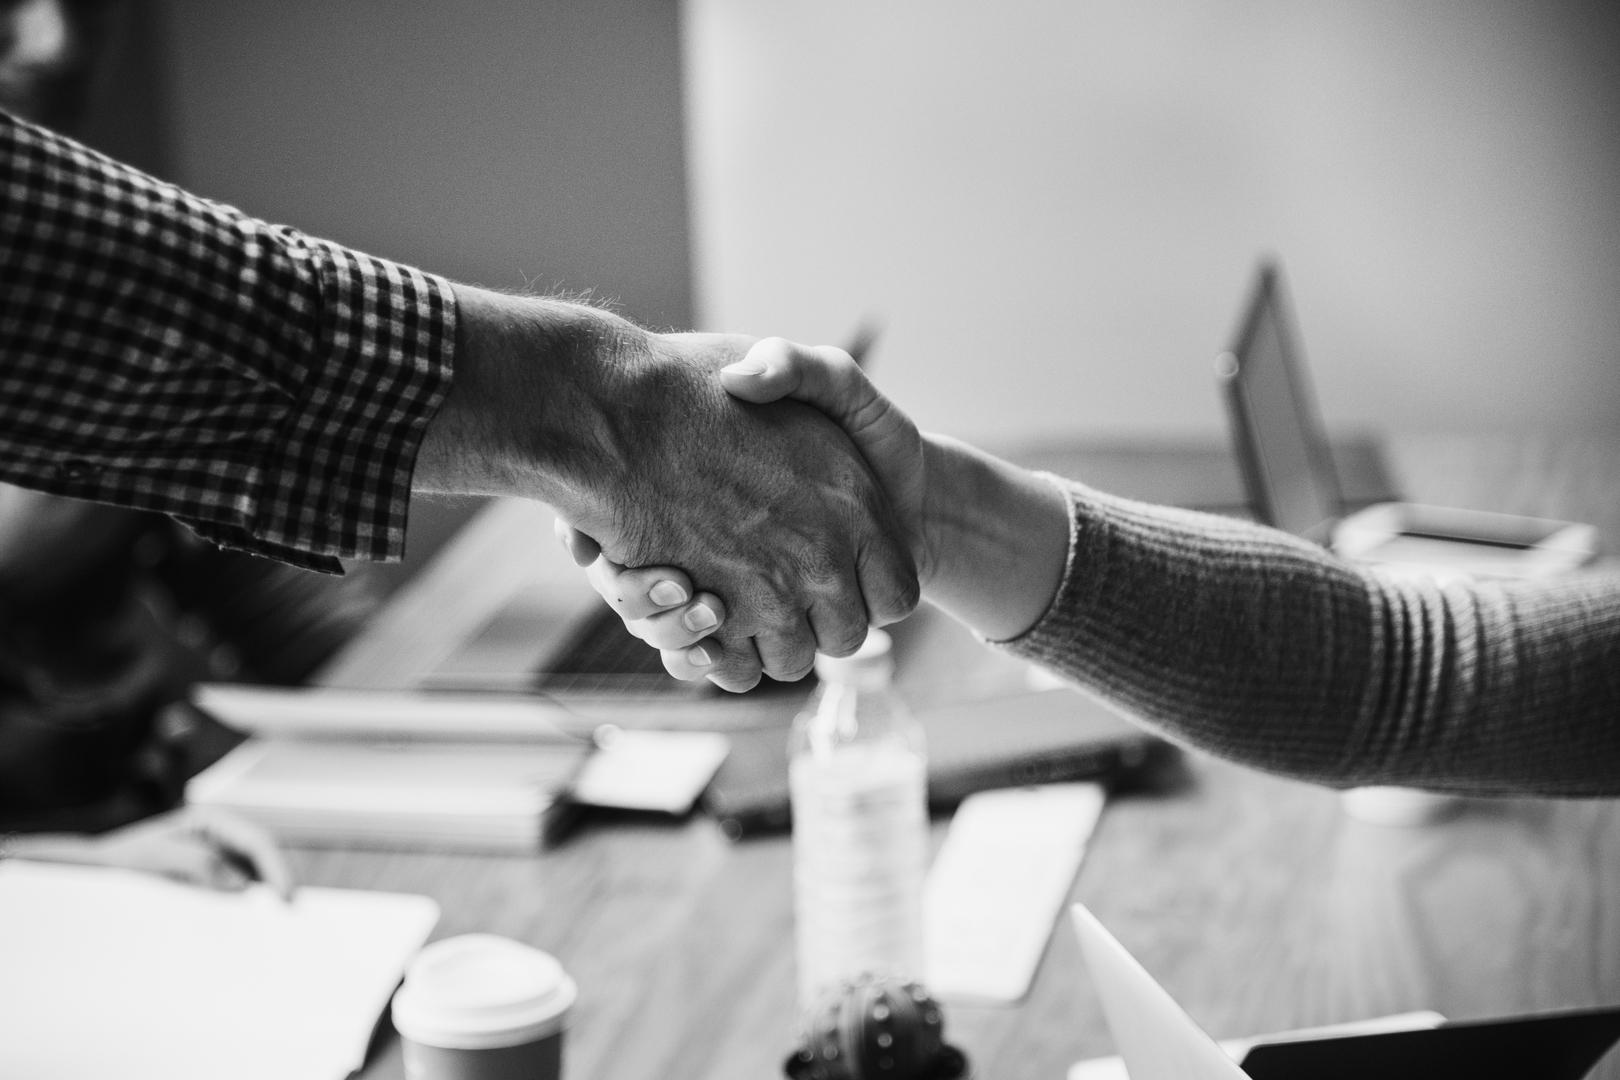 achievement-agreement-arms-black-and-white-business-business-agreement-1452881-pxhere.com_.jpg